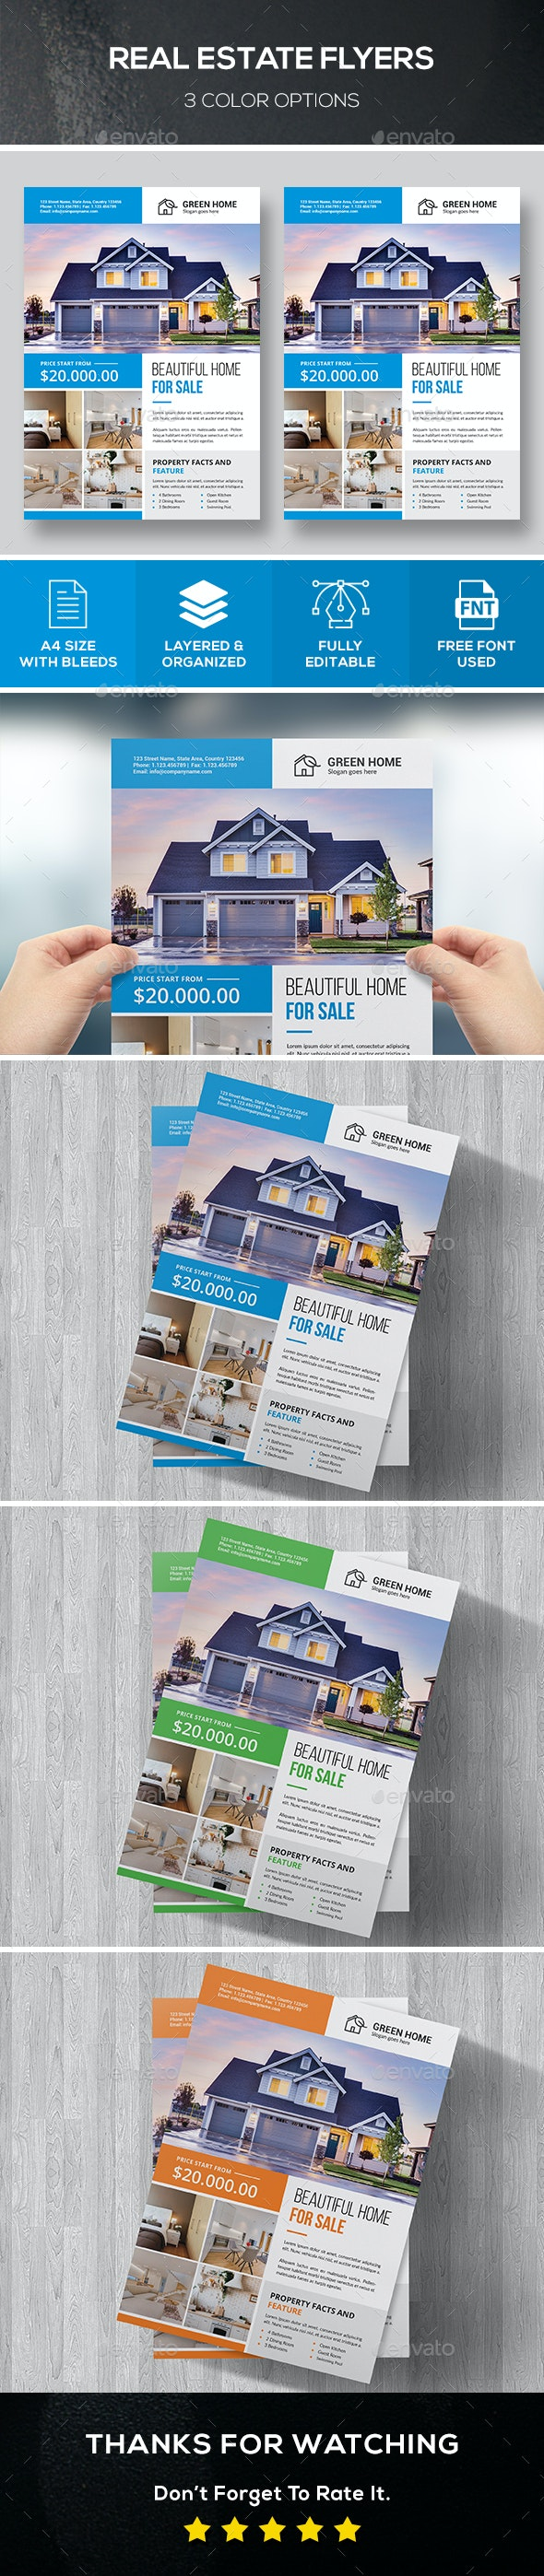 Real Estate Flyers - Commerce Flyers